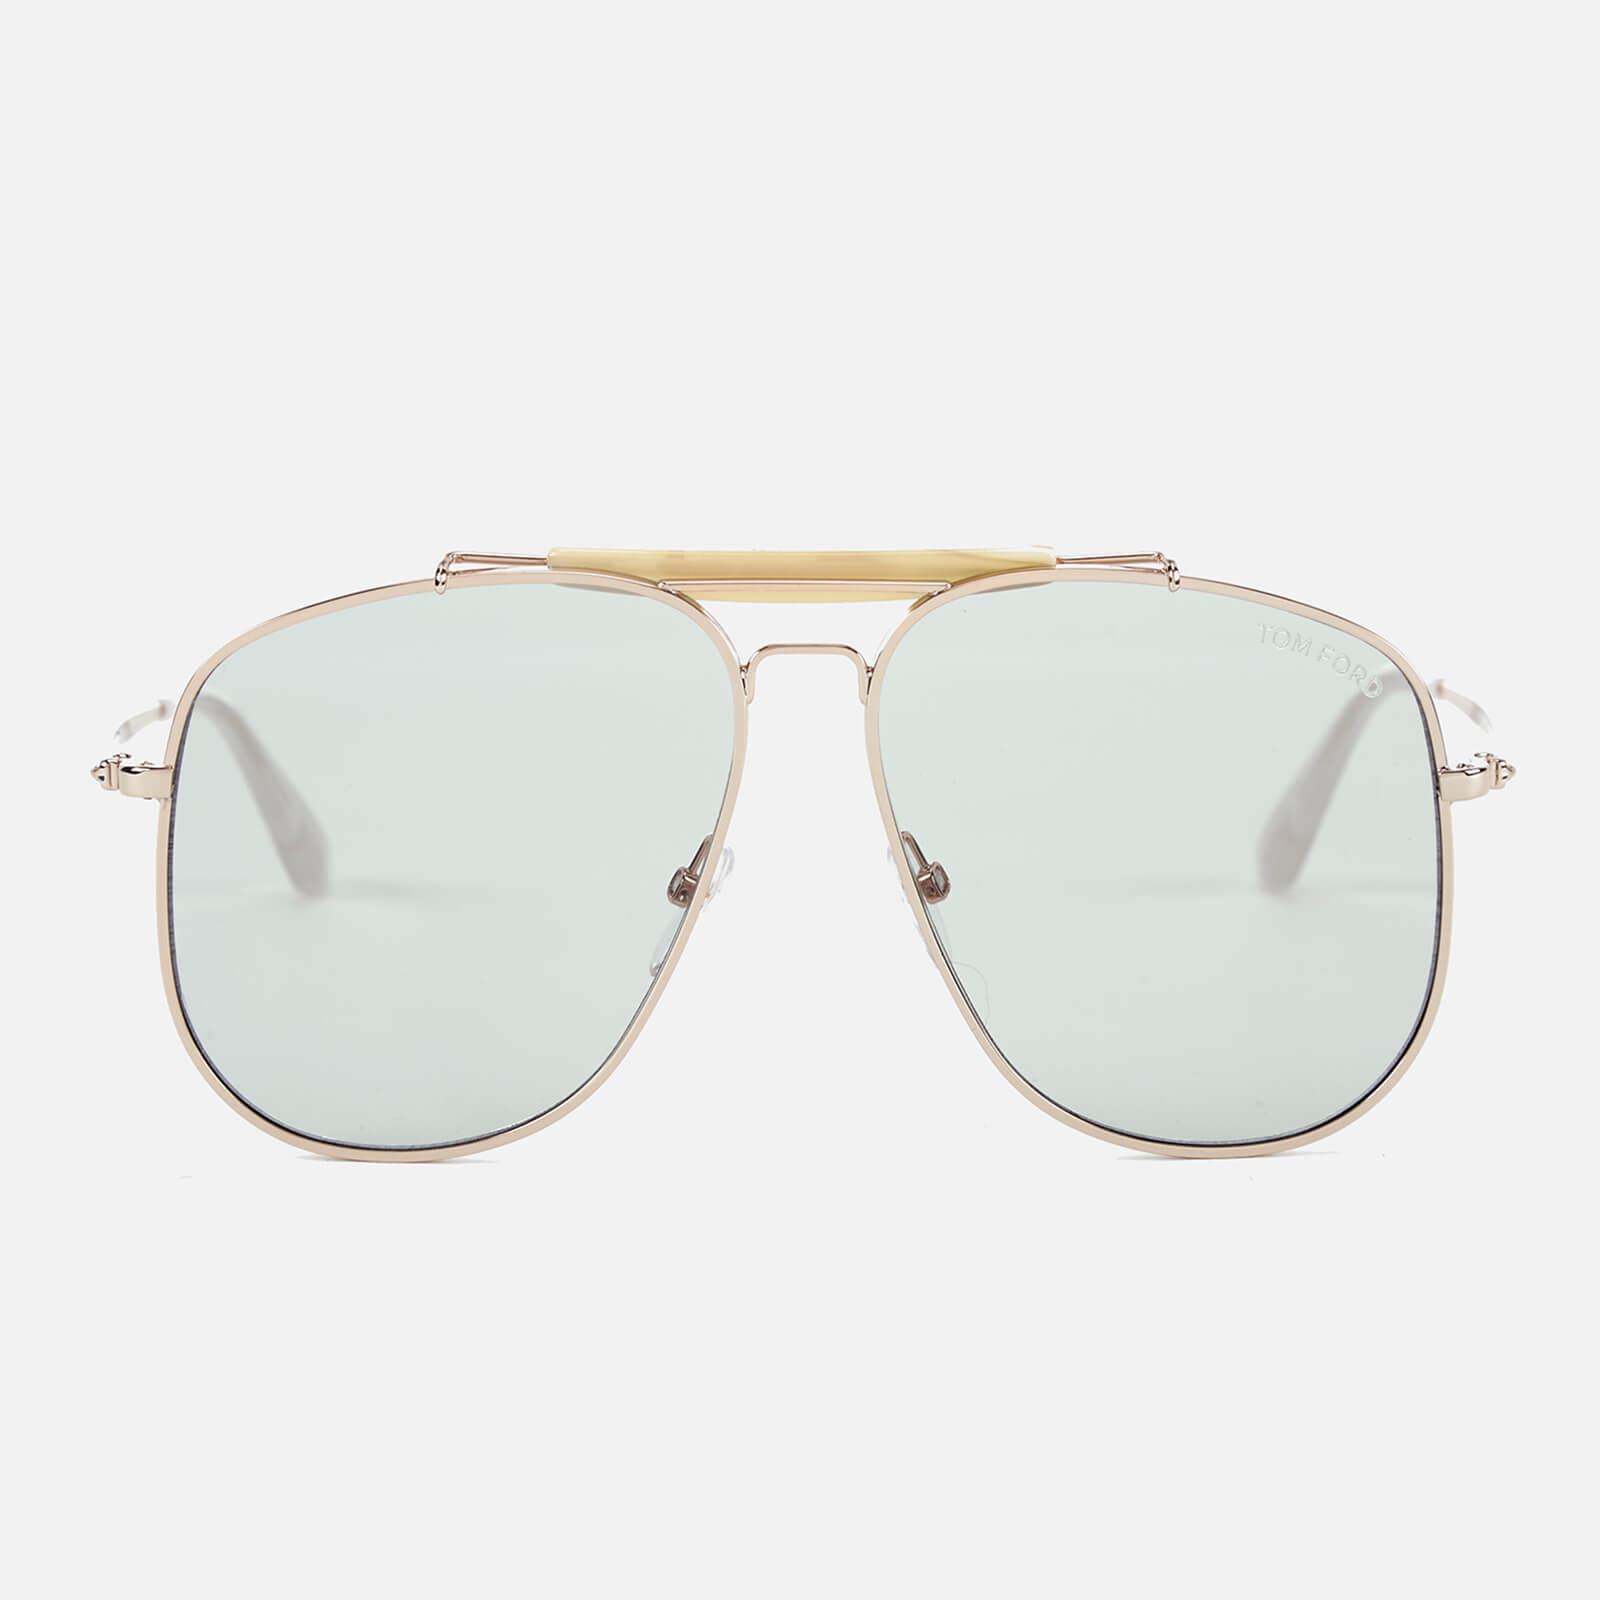 91a3291ad77 Tom Ford Men s Connor Sunglasses - Shiny Rose Gold Blue - Free UK Delivery  over £50